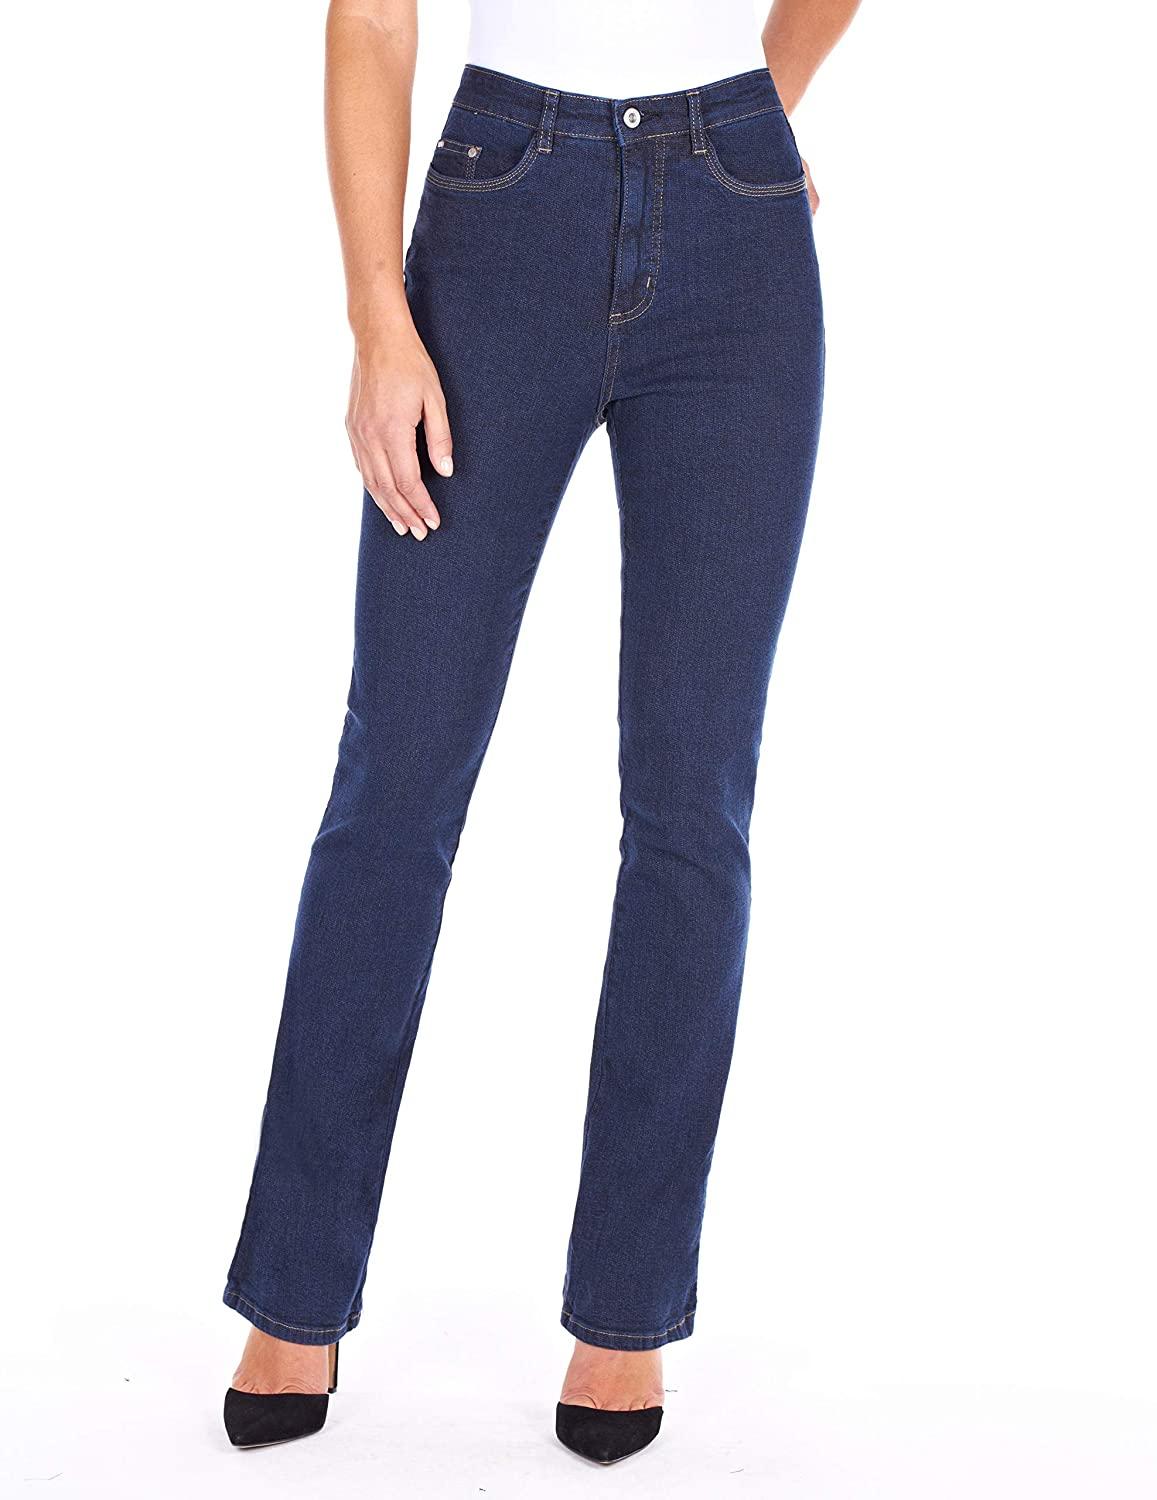 French Dressing Jeans FDJ Peggy Boot Cut 5 Pocket Jeans Style# 6224002